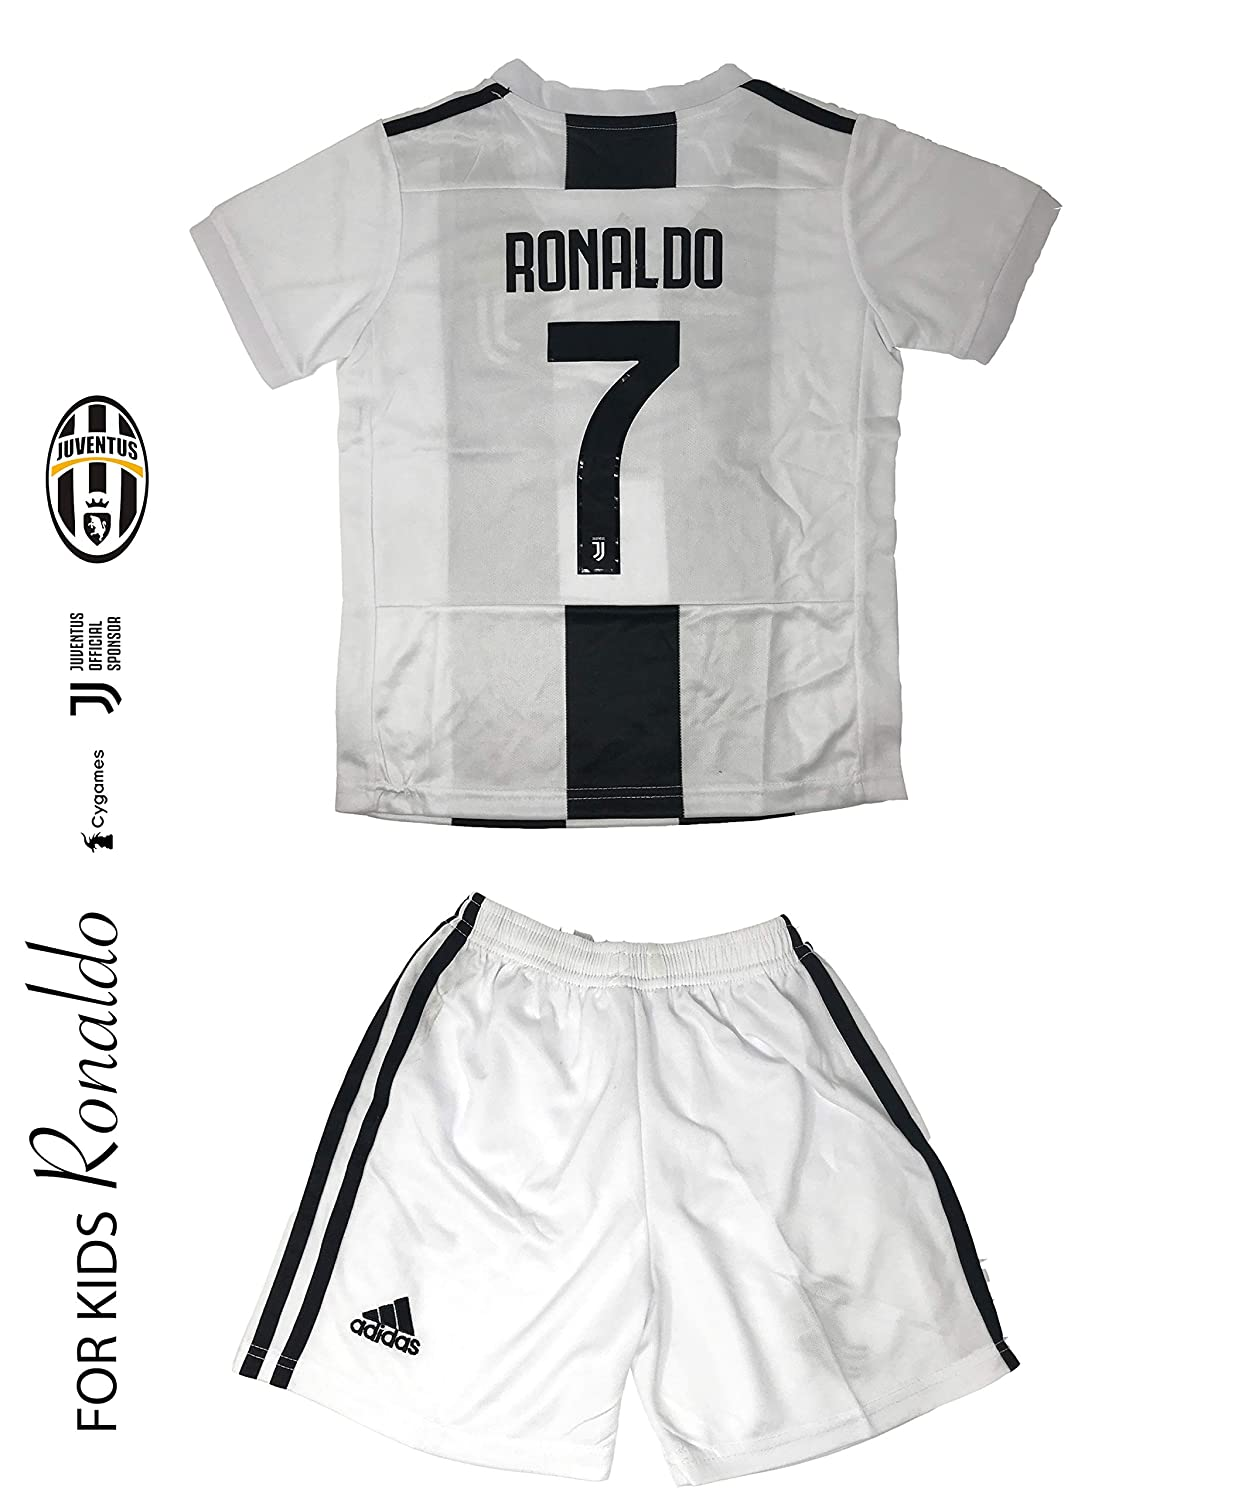 Juventus Soccer Jersey Kids on Season 2019 Juventus Ronaldo No.7 Replica Jersey Kit: Shirt + Short Includes All Patches Logos Soccer KIT Kids